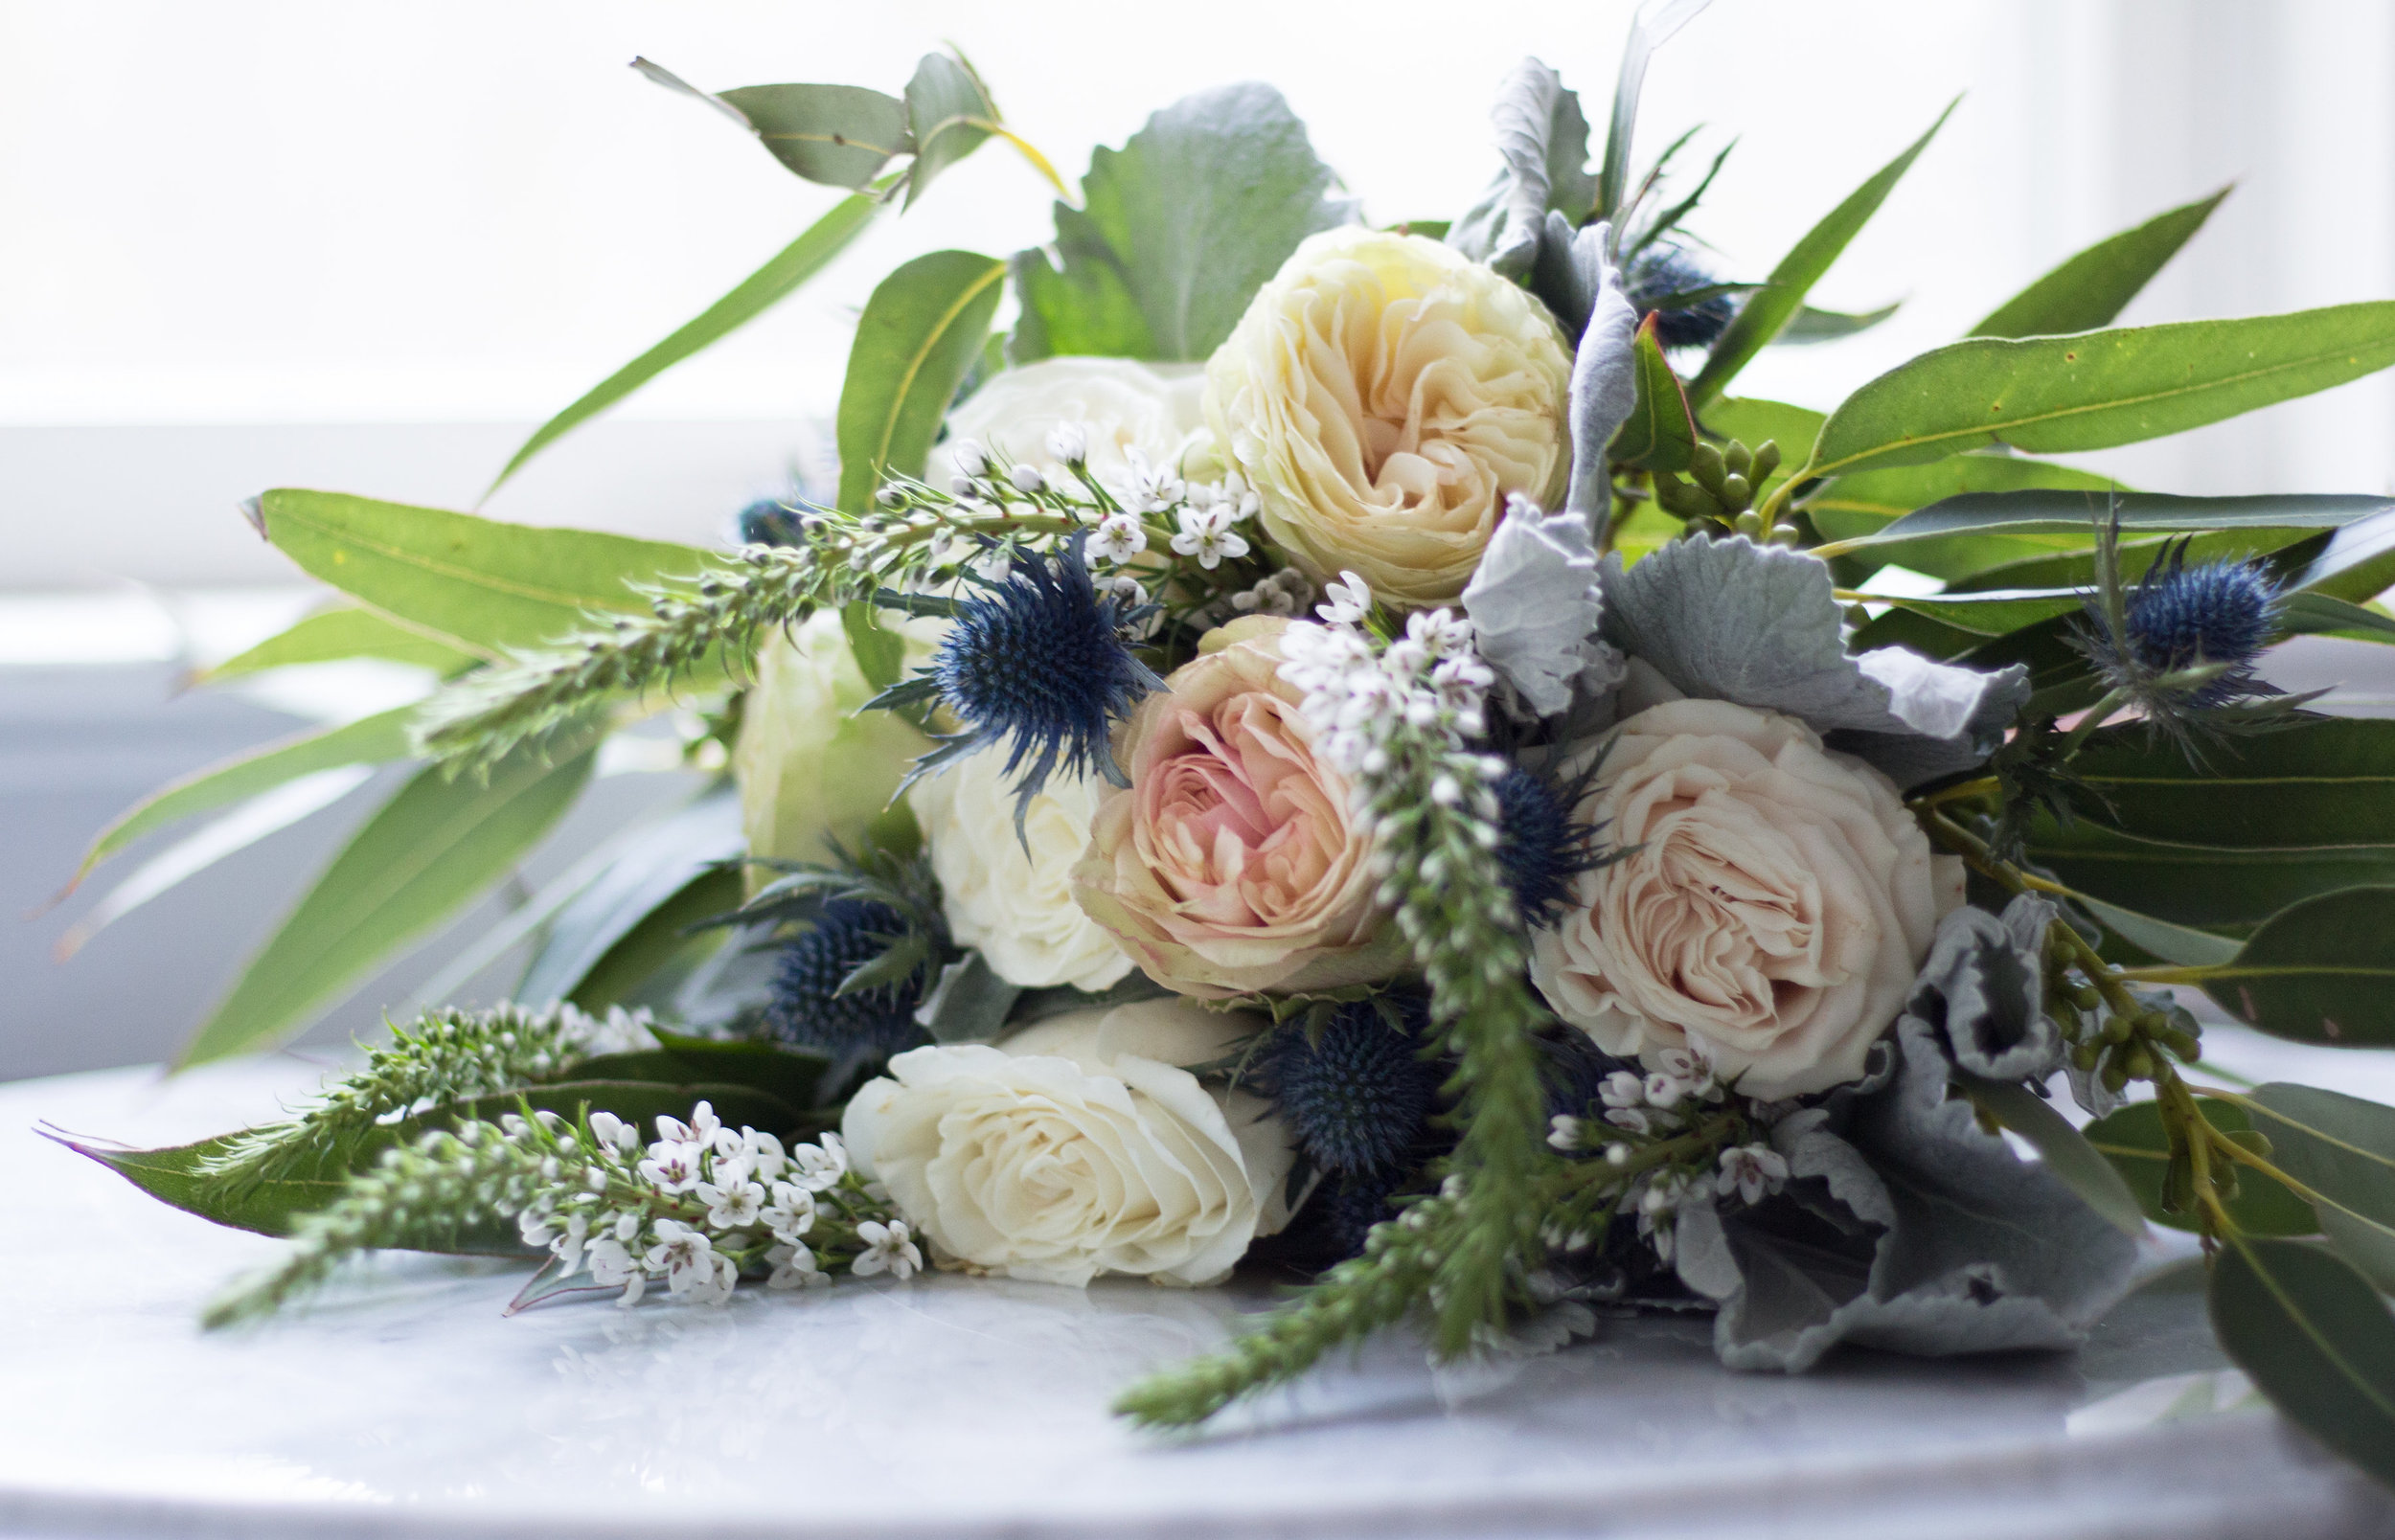 Love & Luster Floral Design Bridal Bouquet with Blush Garden Roses, Thistle and Eucalyptus